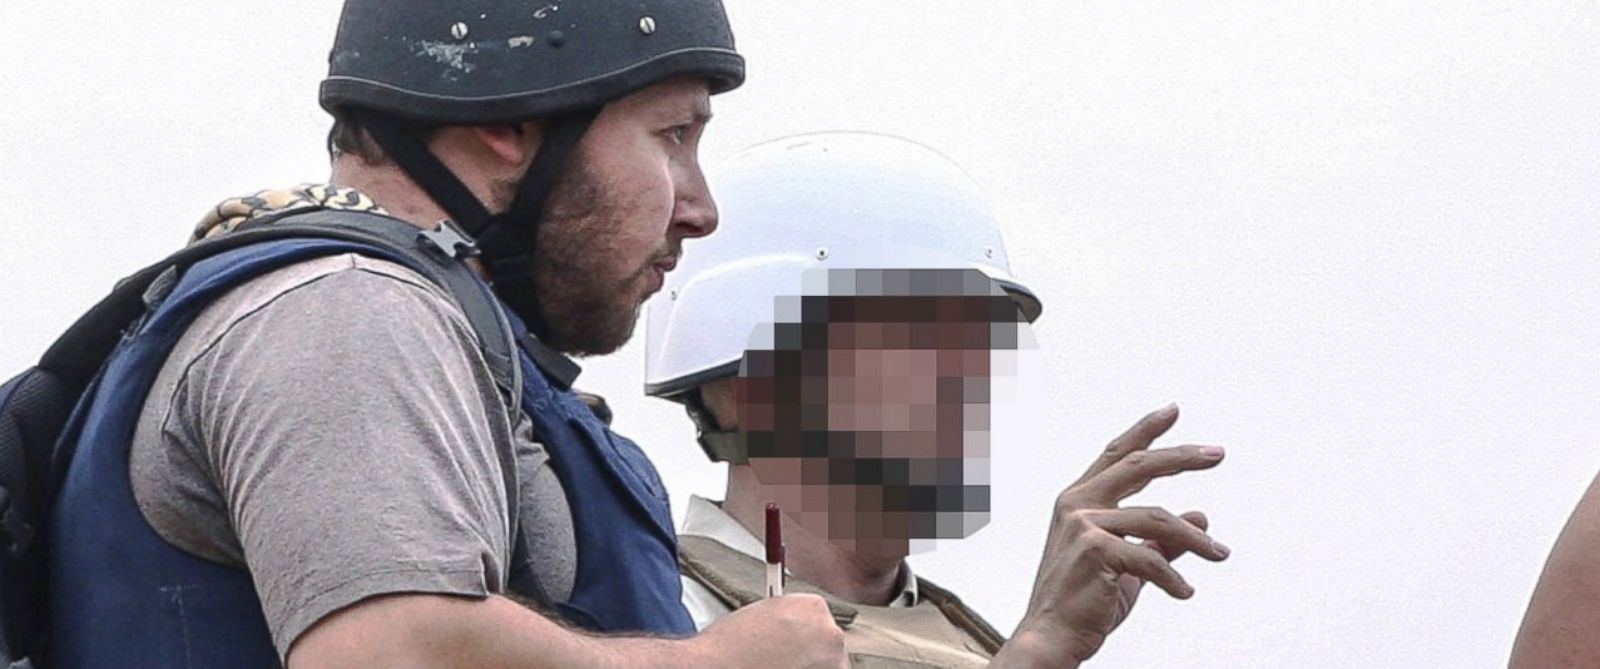 PHOTO: In this handout image made available by the photographer Etienne de Malglaive, American journalist Steven Sotloff (center with black helmet) talks to Libyan rebels on the Al Dafniya front line, June 2, 2011 in Misrata, Libya.